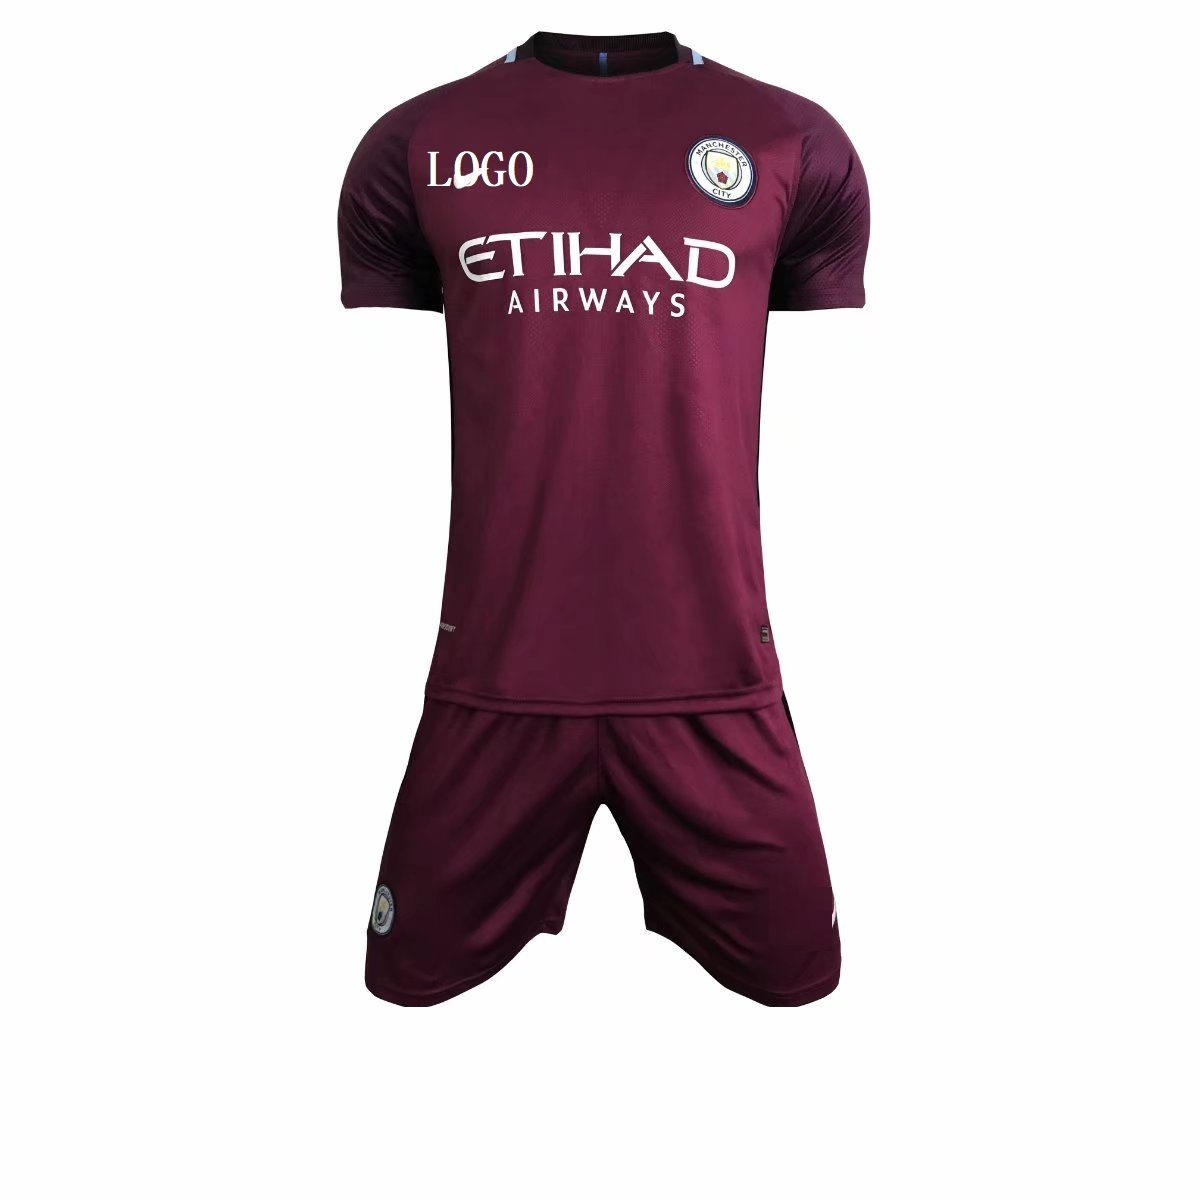 free shipping c505b f7fbd 2017/18 Adult Manchester City Away Purple Soccer Jersey Uniforms Men  uniformes de futbol soccer soccer jerseys for sale